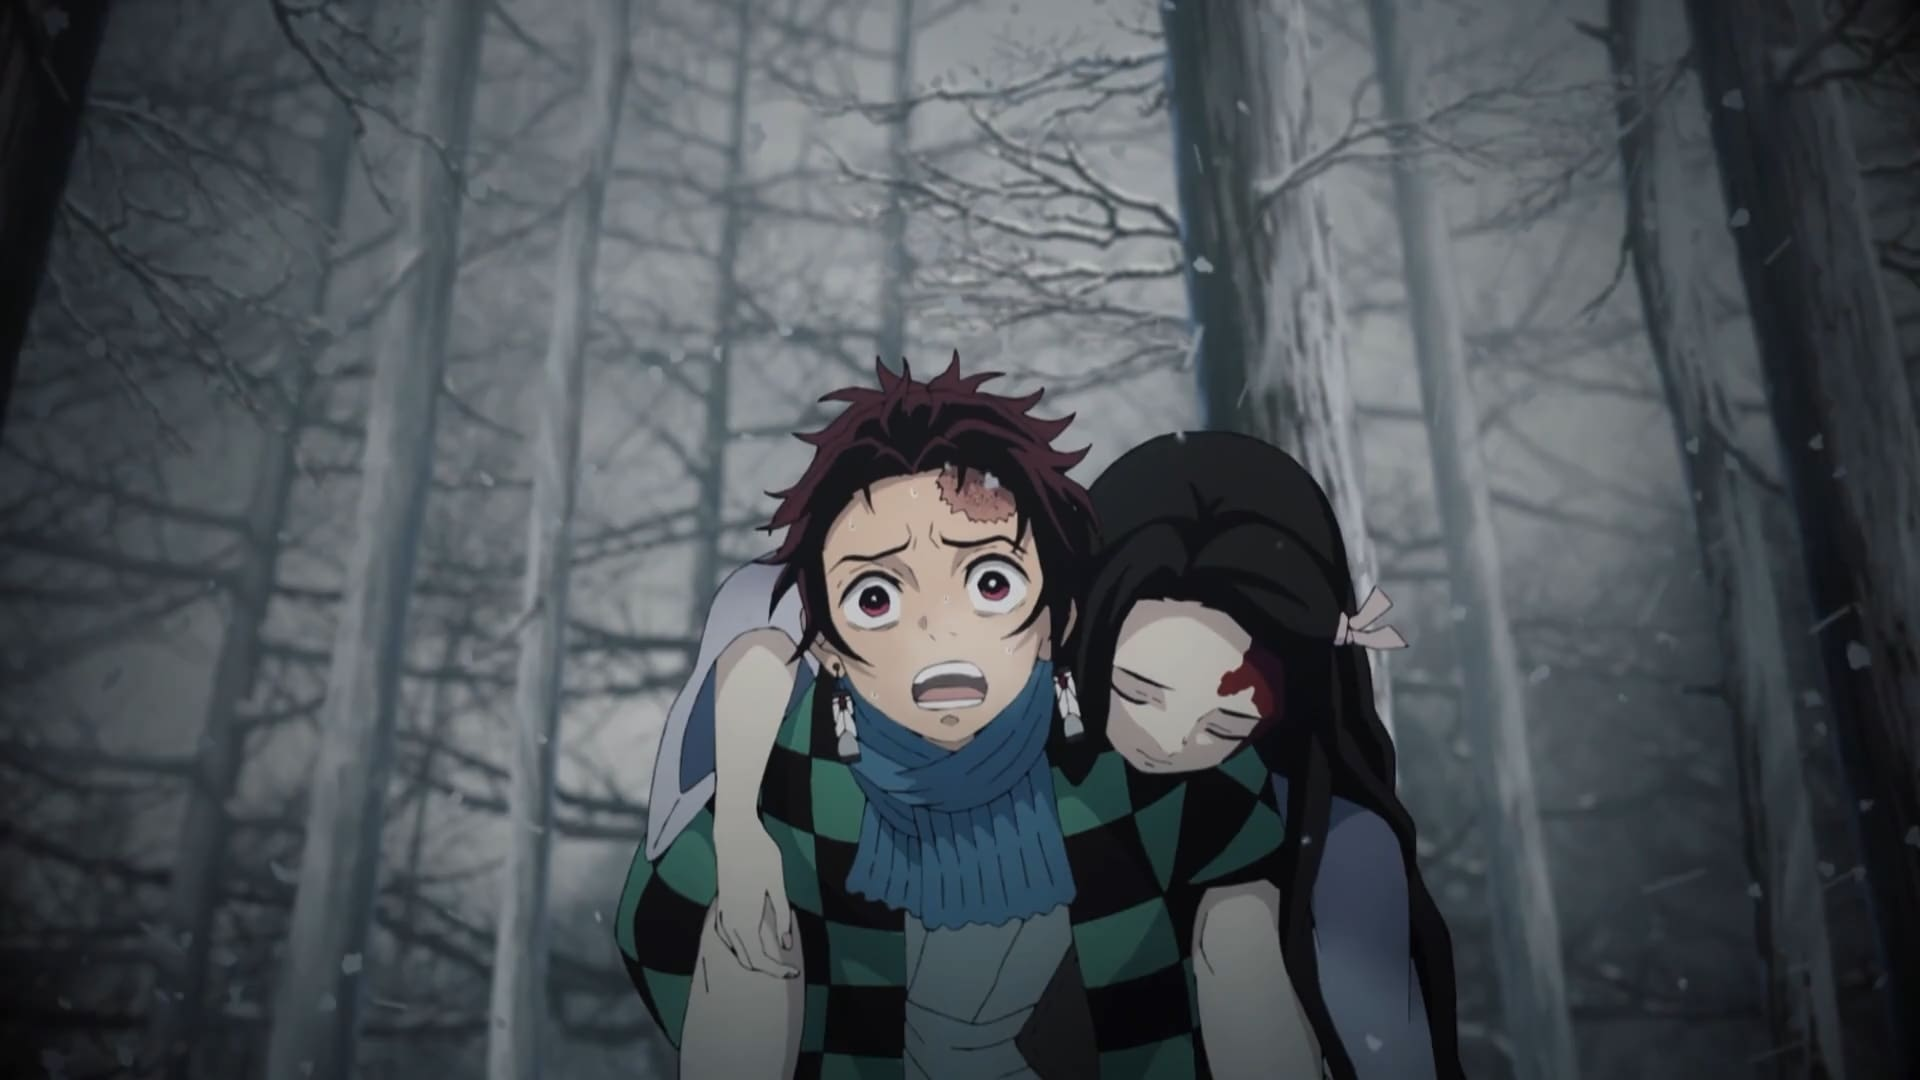 Demon Slayer Kimetsu No Yaiba Episode 13 Live Streaming Details